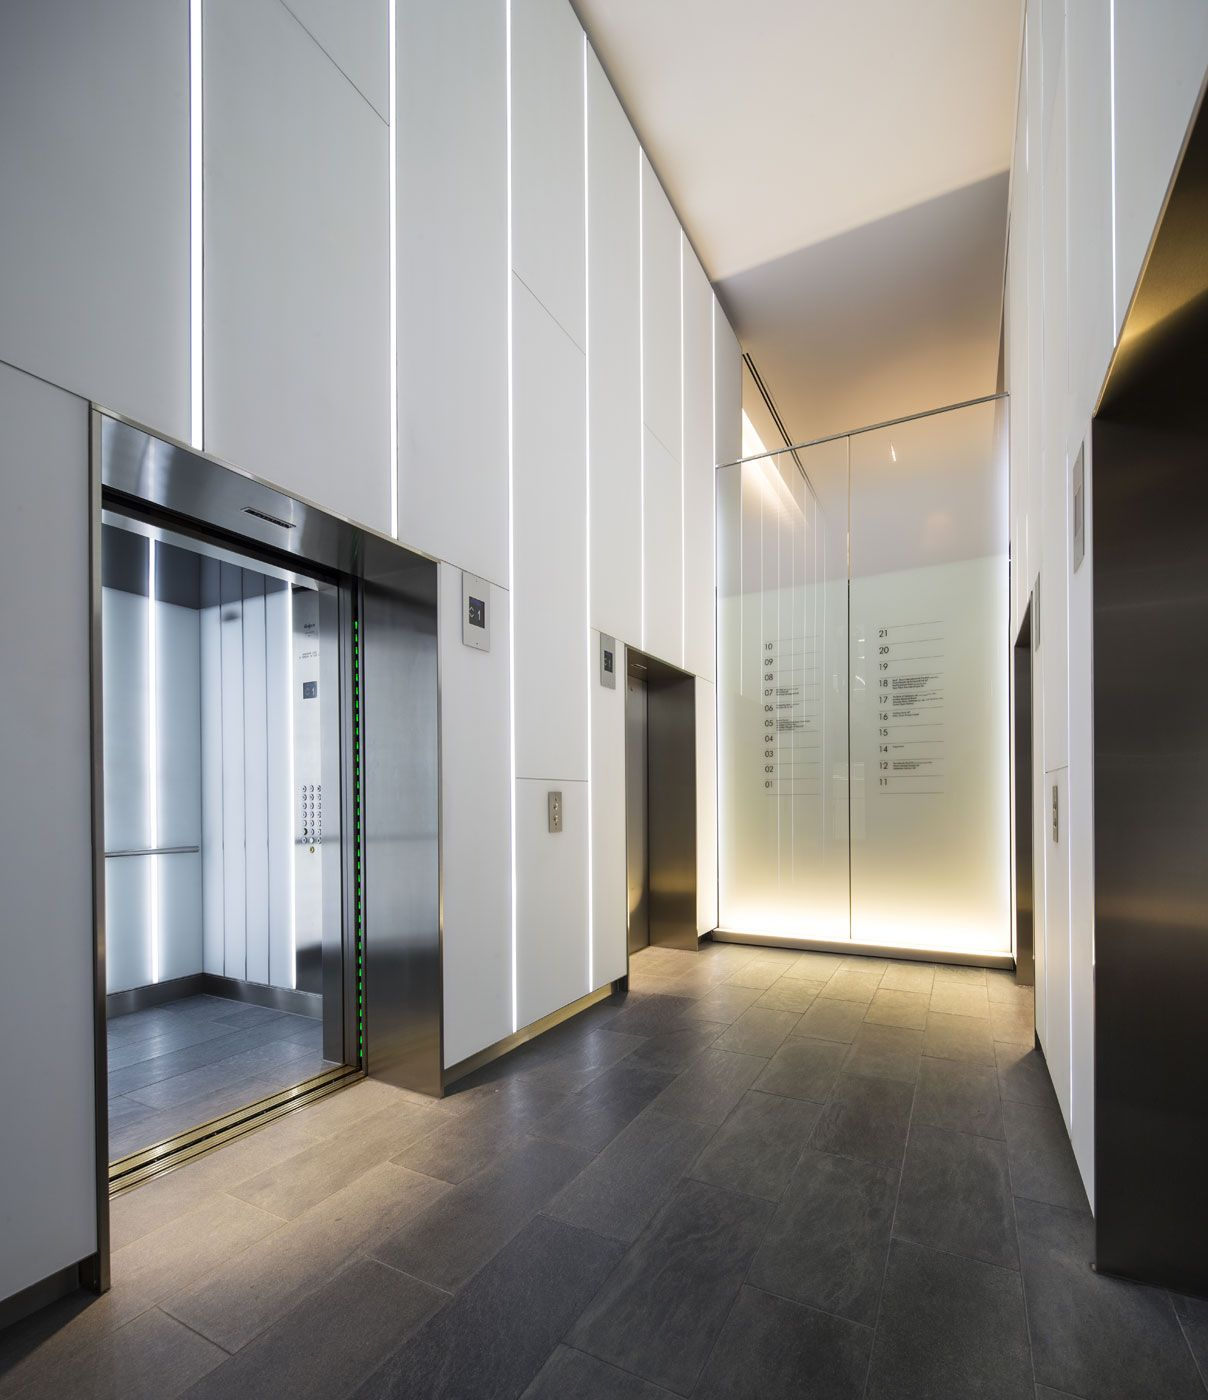 City tower interior design pinterest tower city for Elevator designs